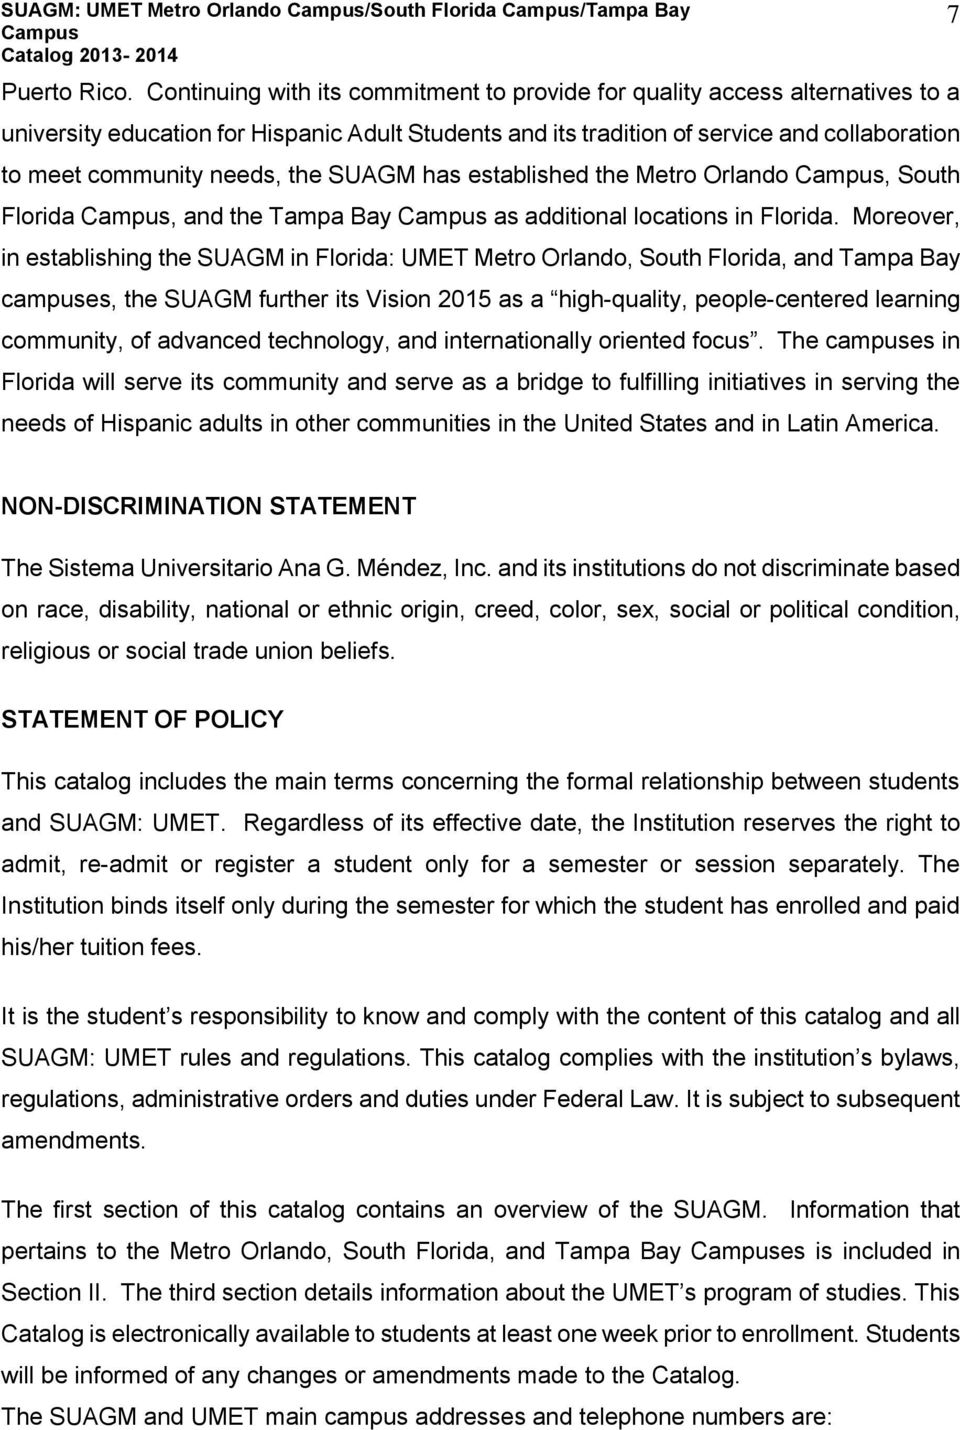 the SUAGM has established the Metro Orlando, South Florida, and the Tampa Bay as additional locations in Florida.